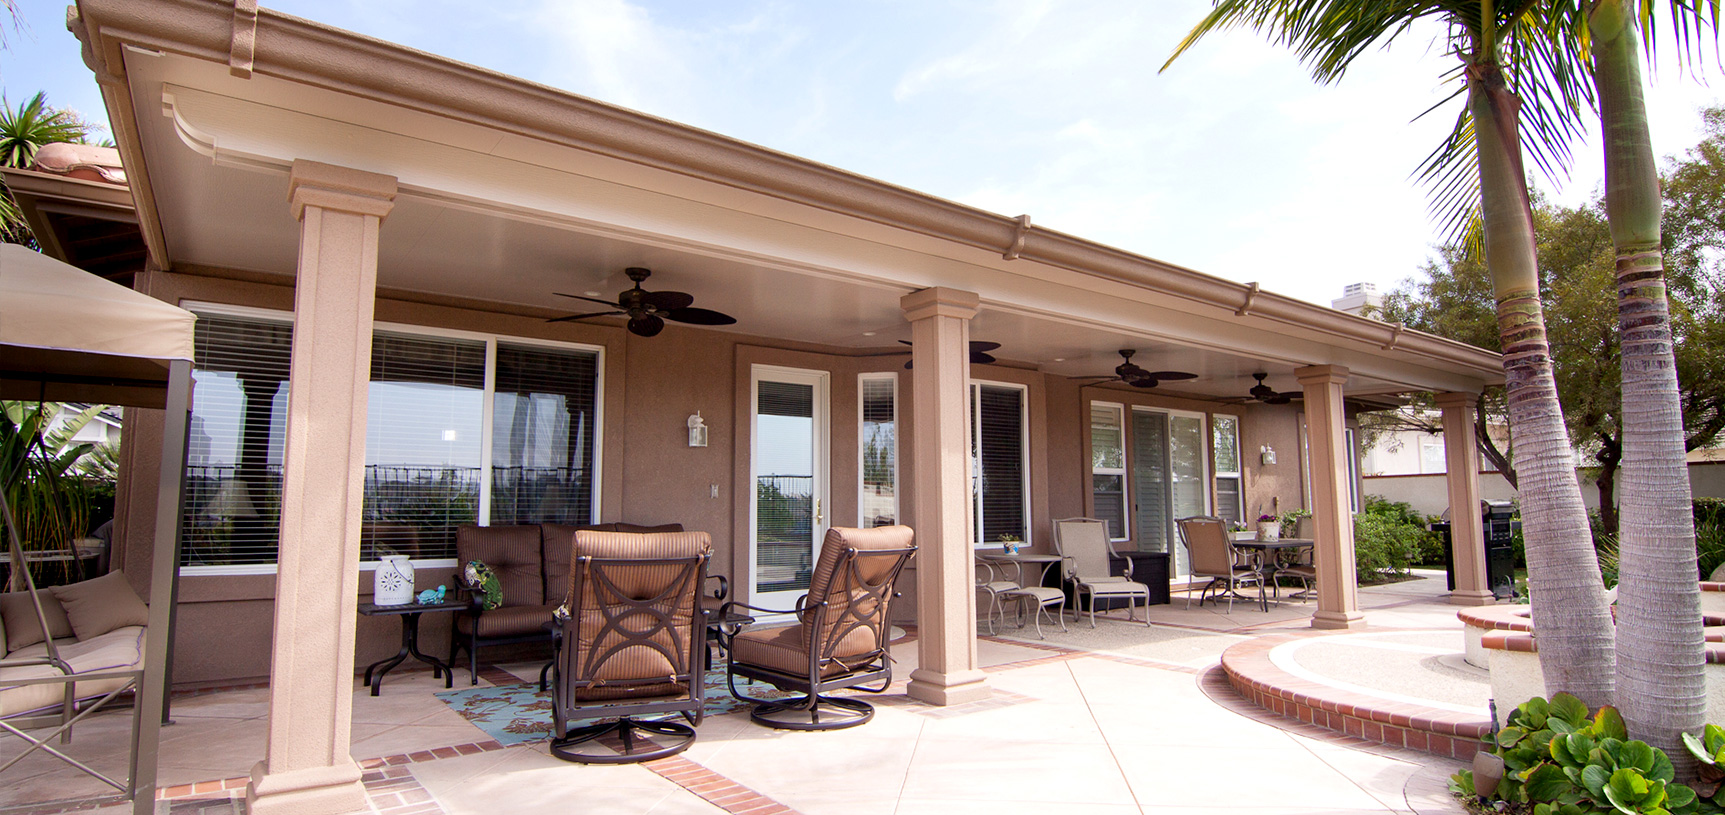 Elitewood Solid Patio Covers - Patio Warehouse on Patio Cover Ideas Wood id=49645